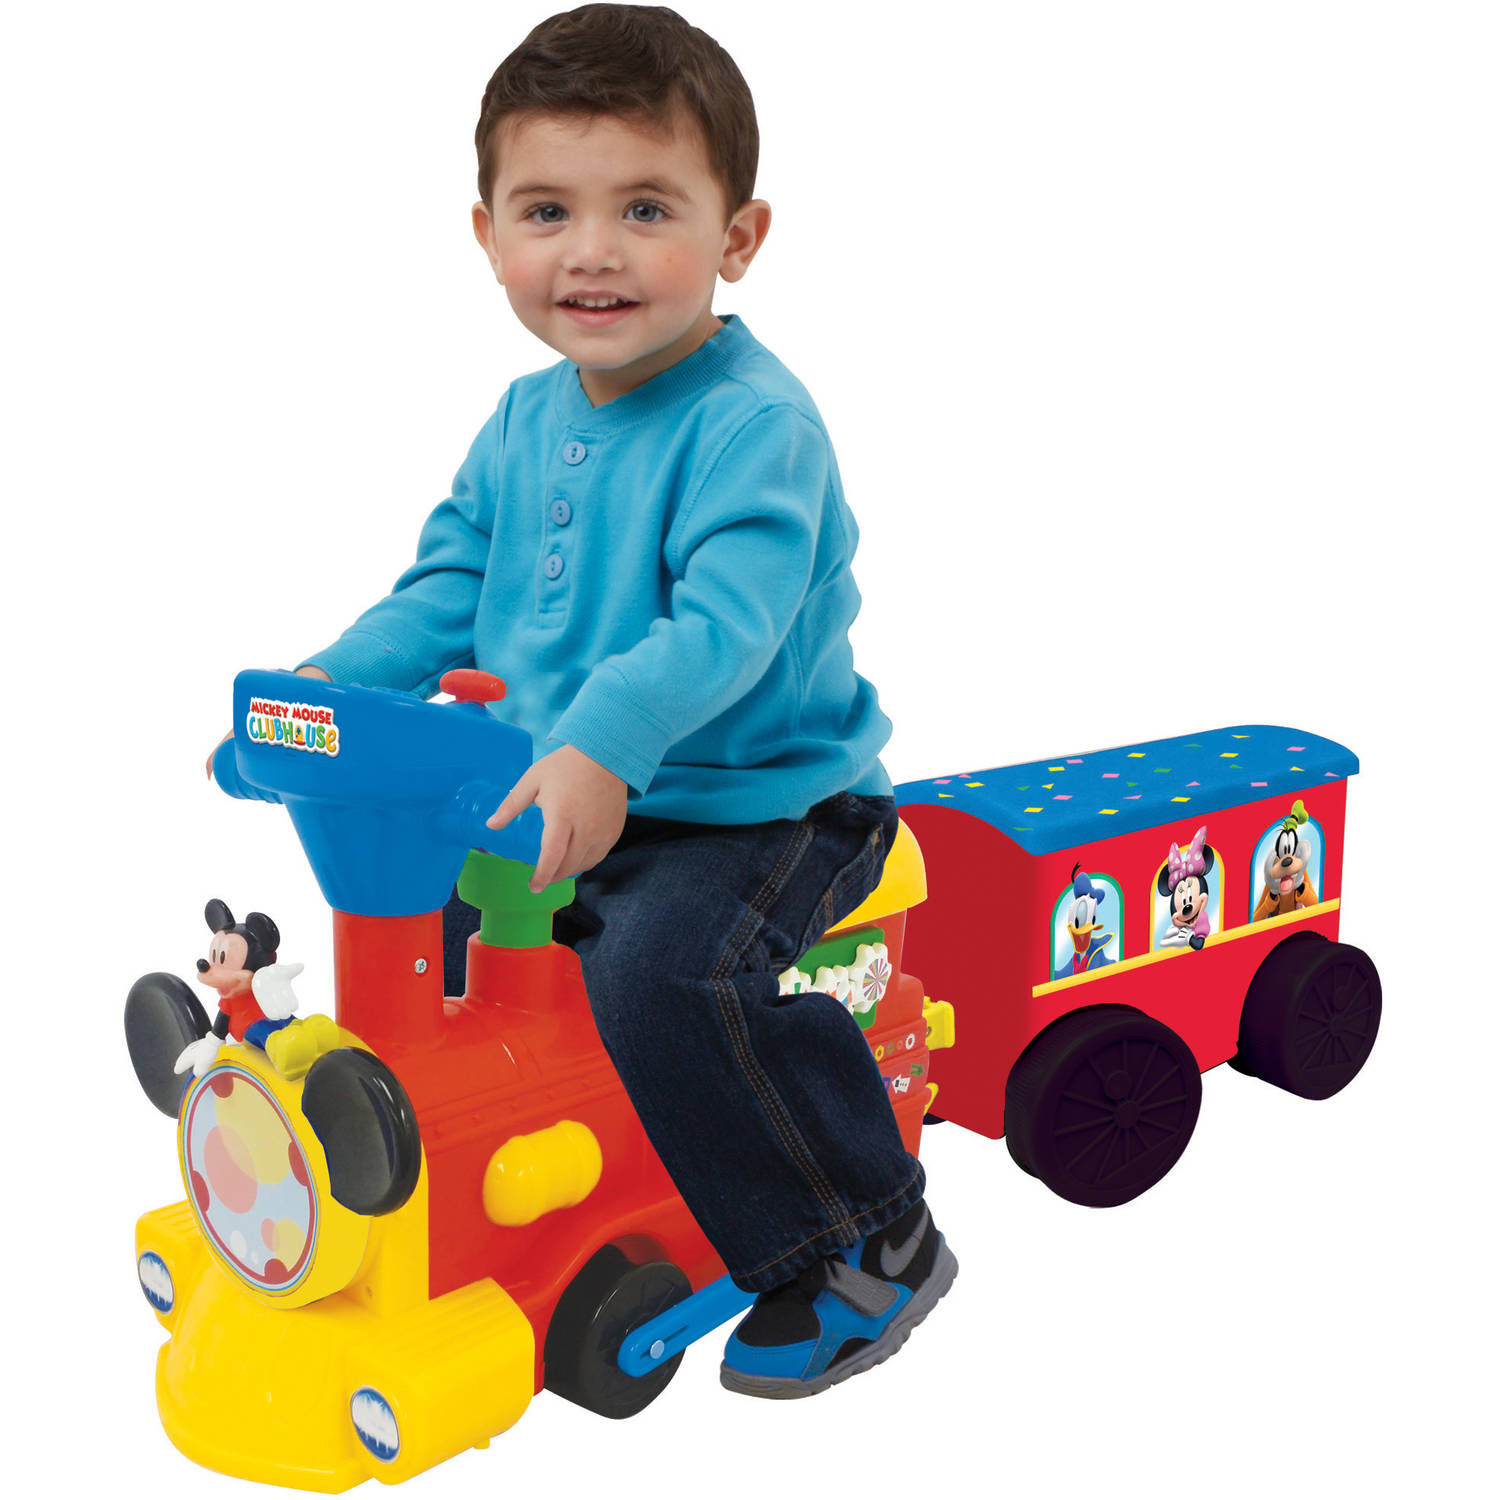 Disney Mickey Mouse 2-in-1 Battery-Powered Train with Trailer